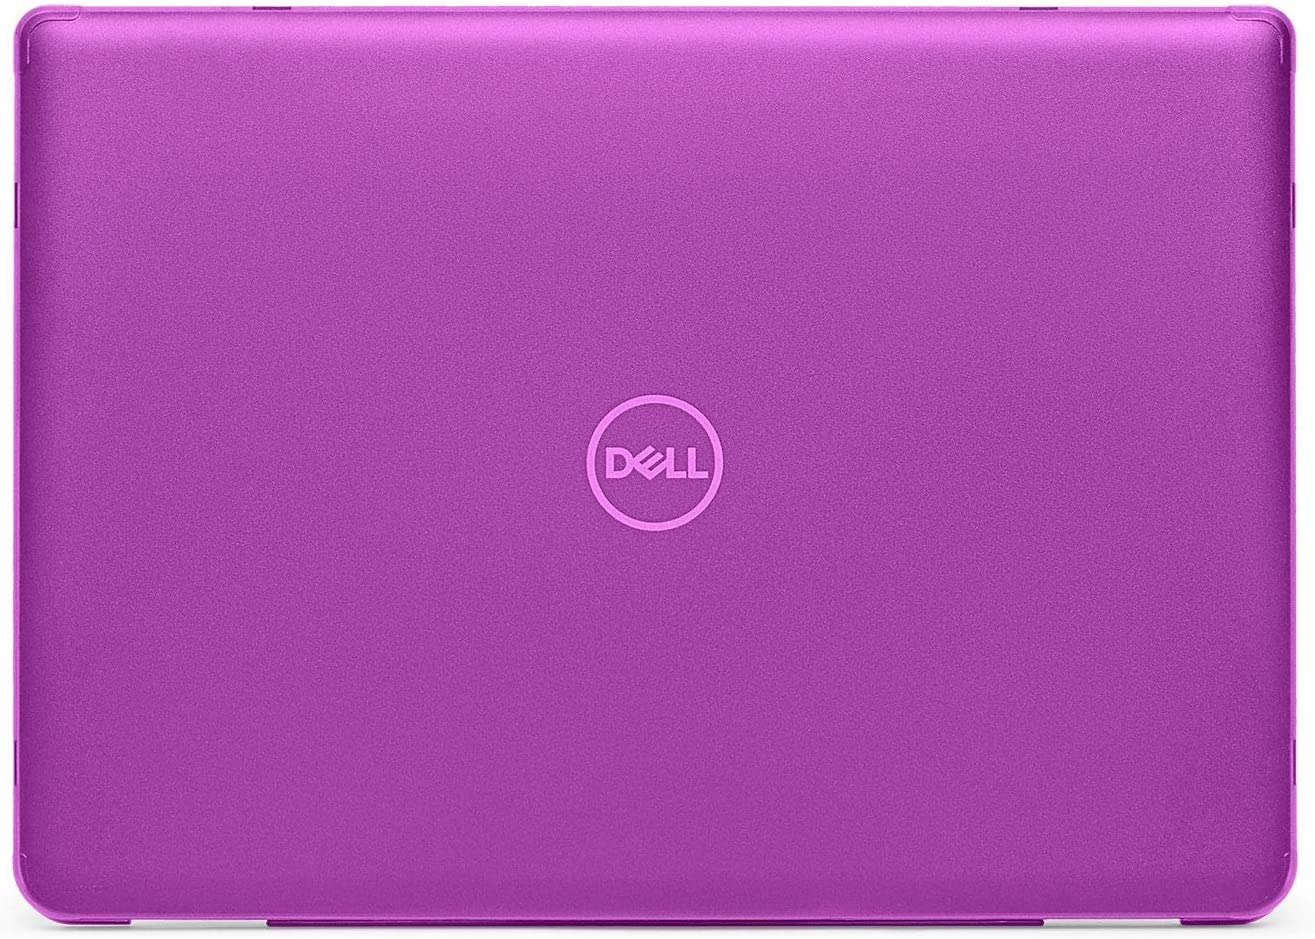 "mCover Hard Shell Case for New 2020 14"" Dell Latitude 3410 Laptop Computers (NOT Compatible with Other Dell Latitude Computers) (Purple)"